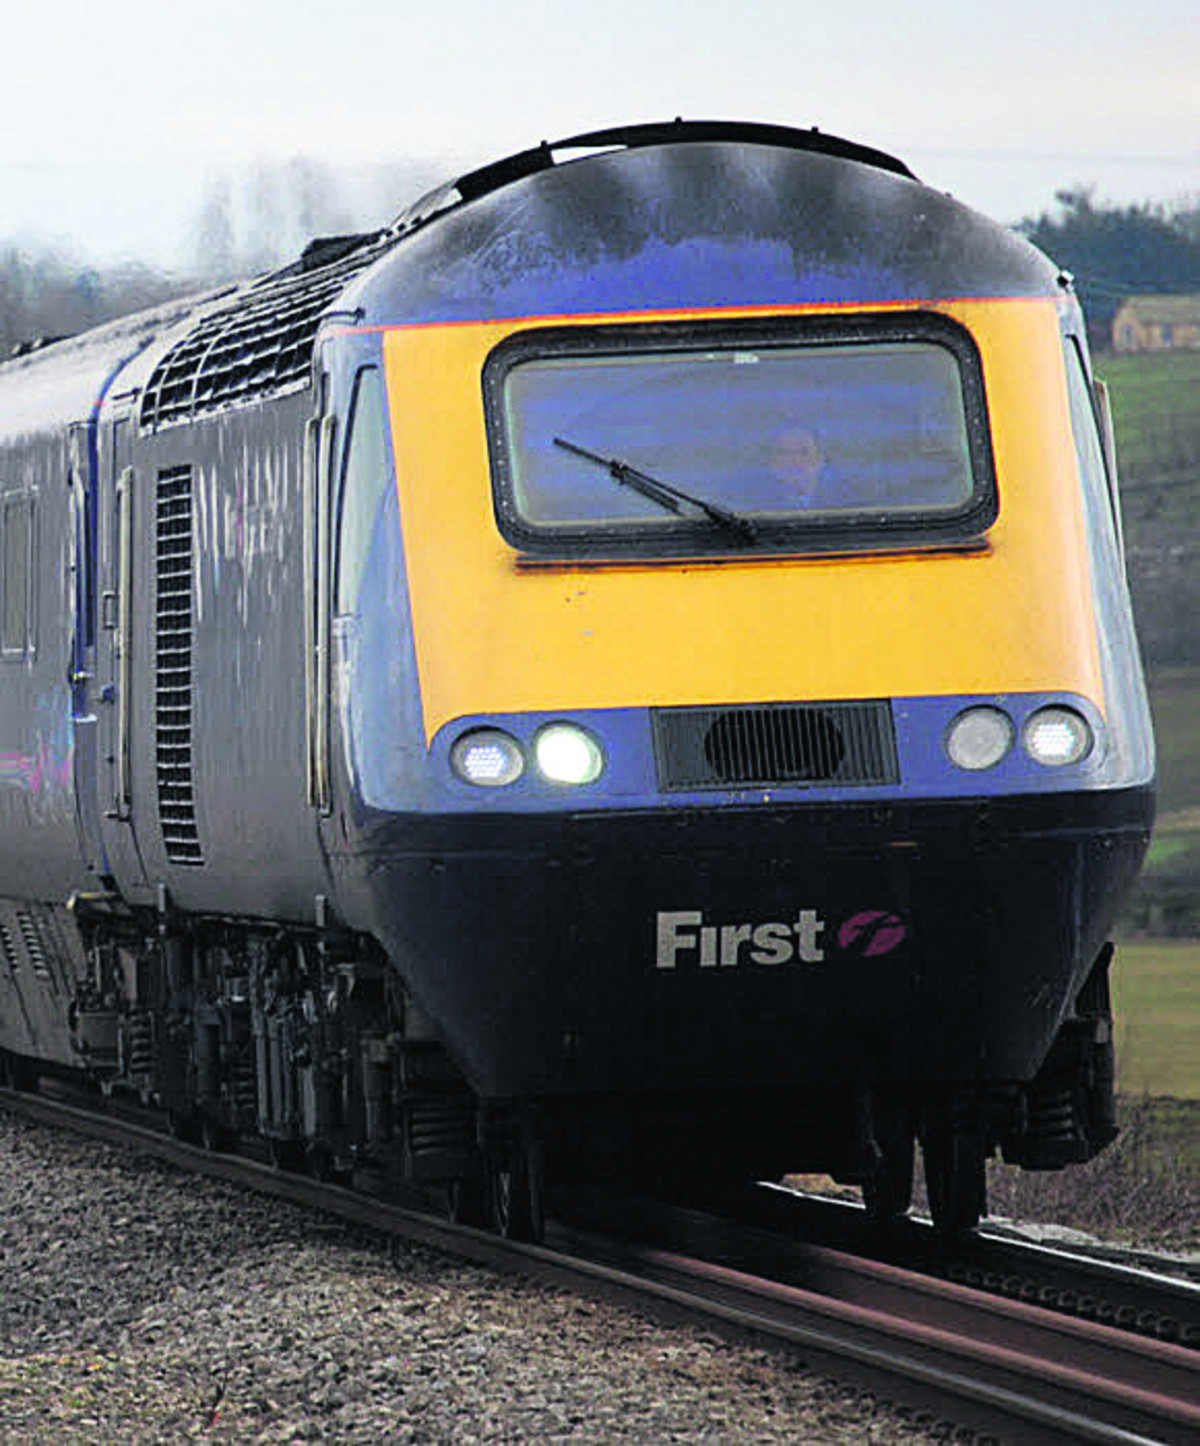 Delays on First Great Western trains between Didcot and Reading